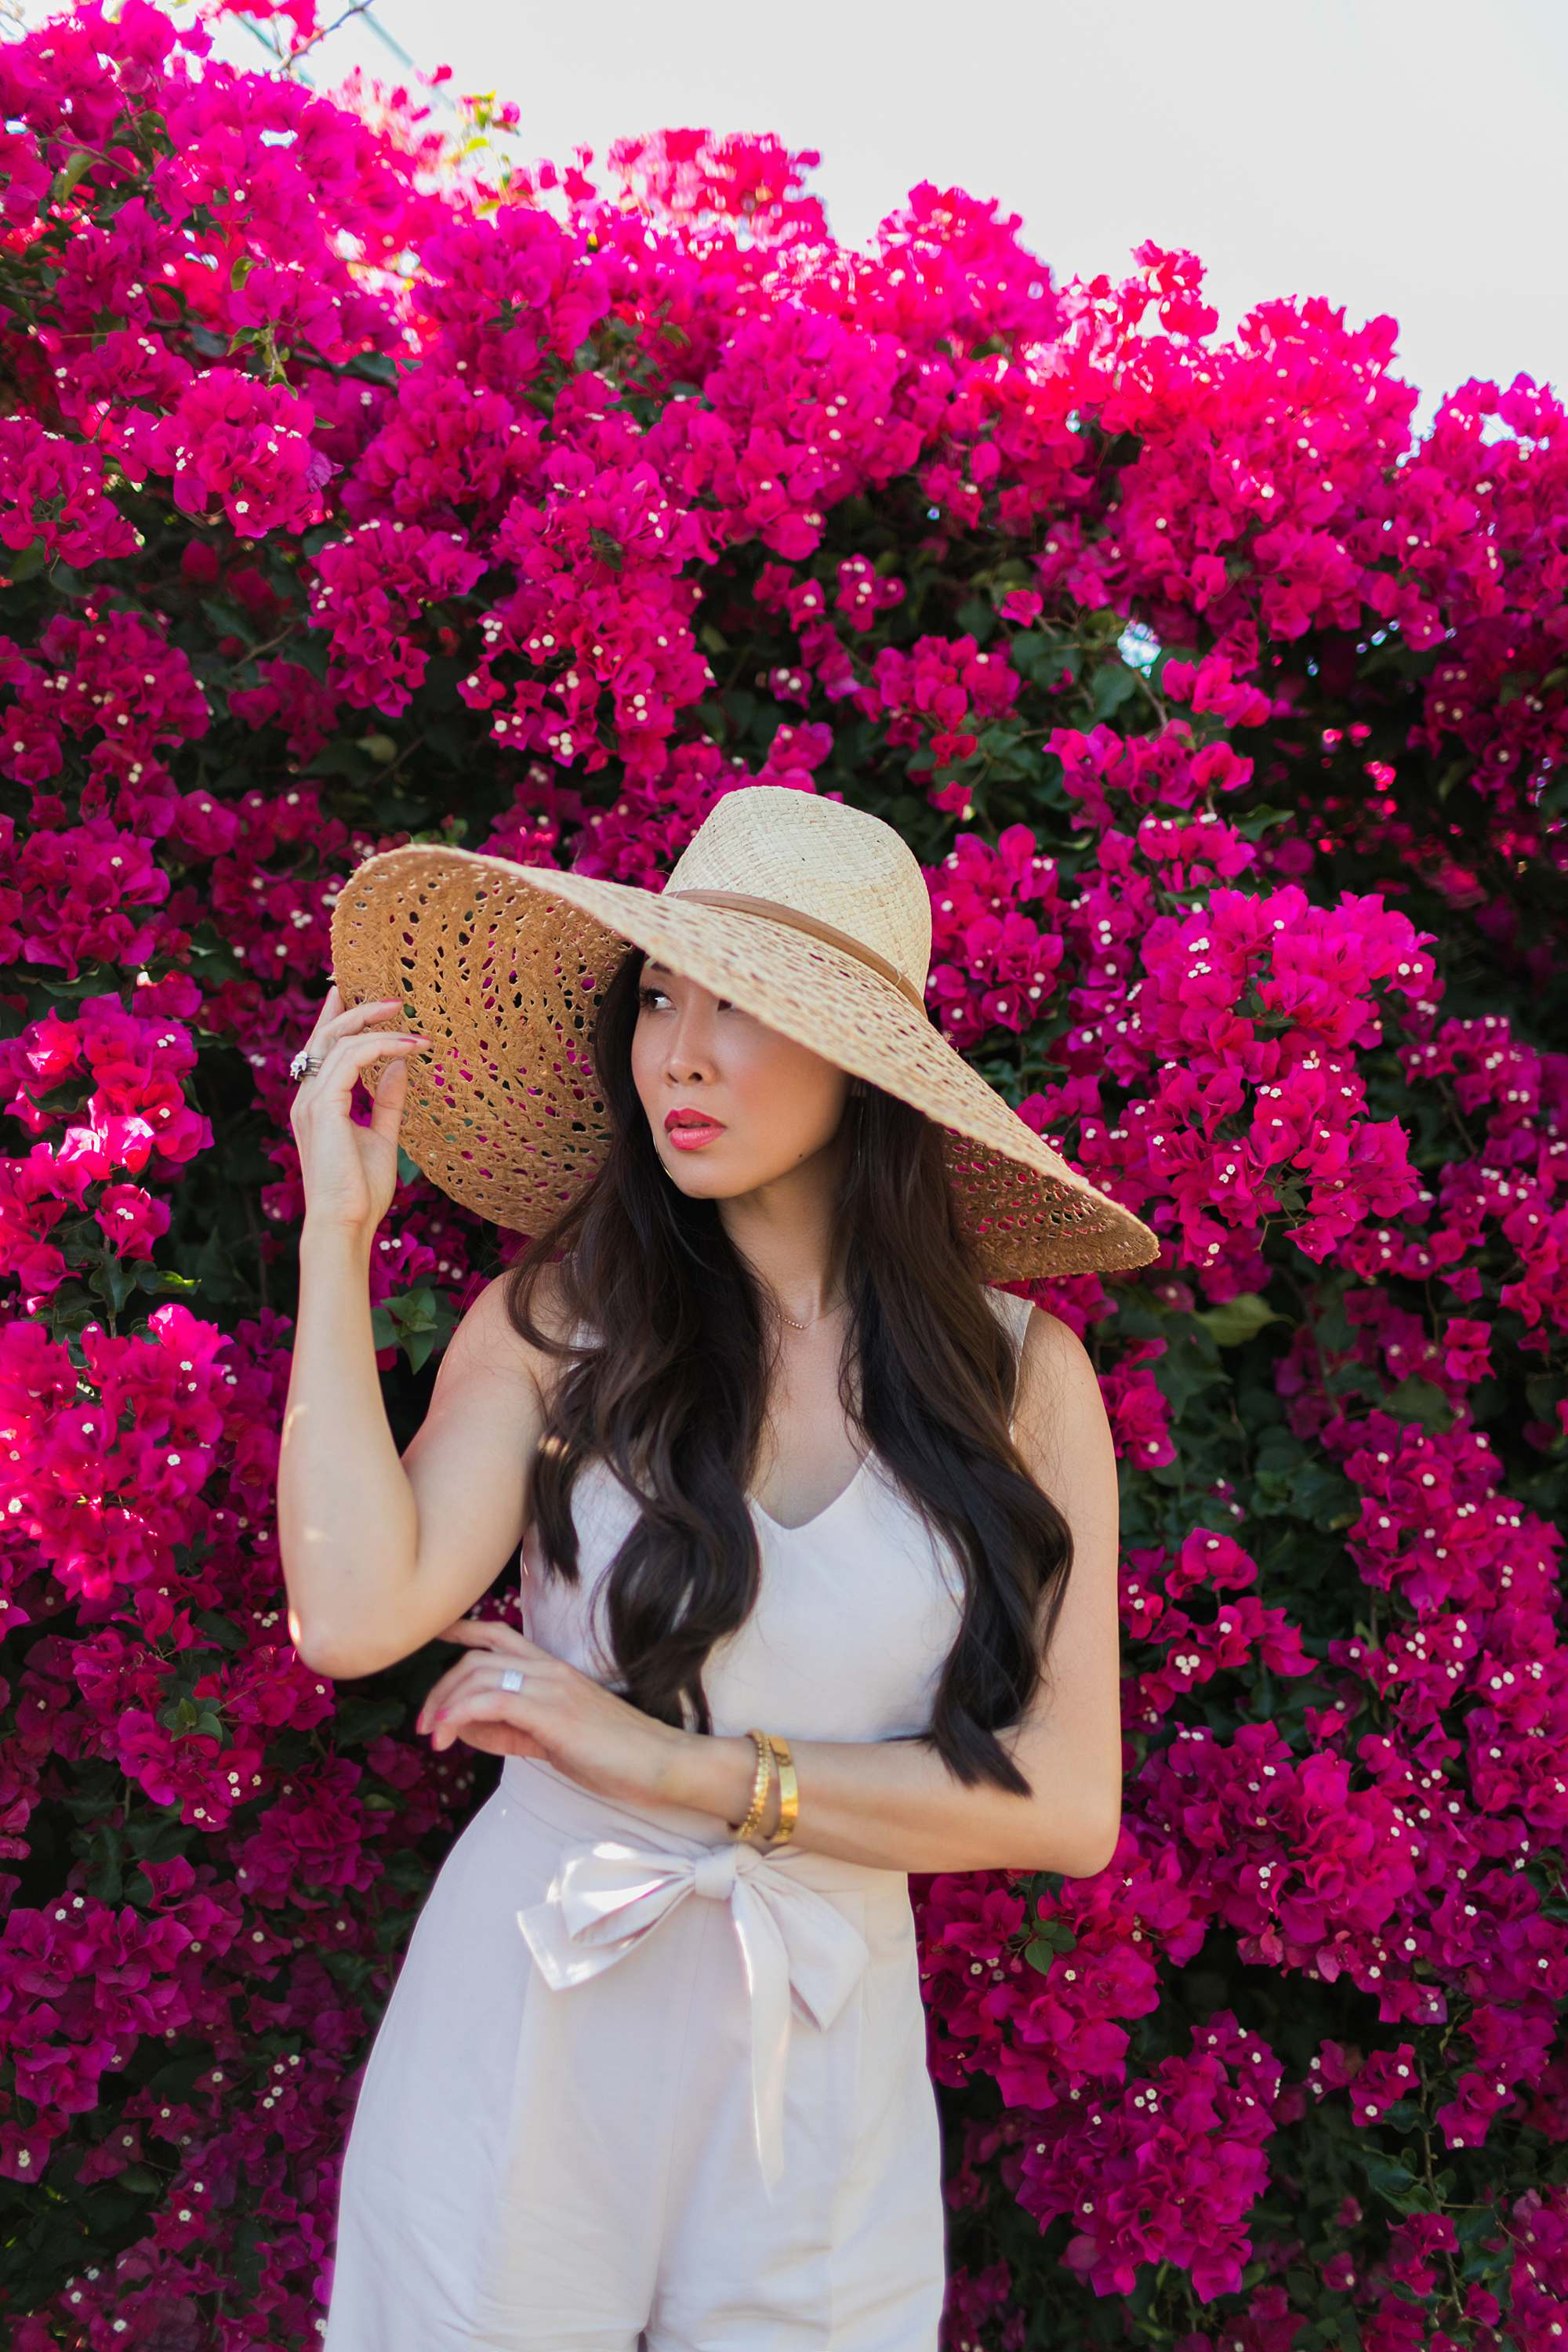 woman in pink jumpsuit infant of Bougainvillea plant